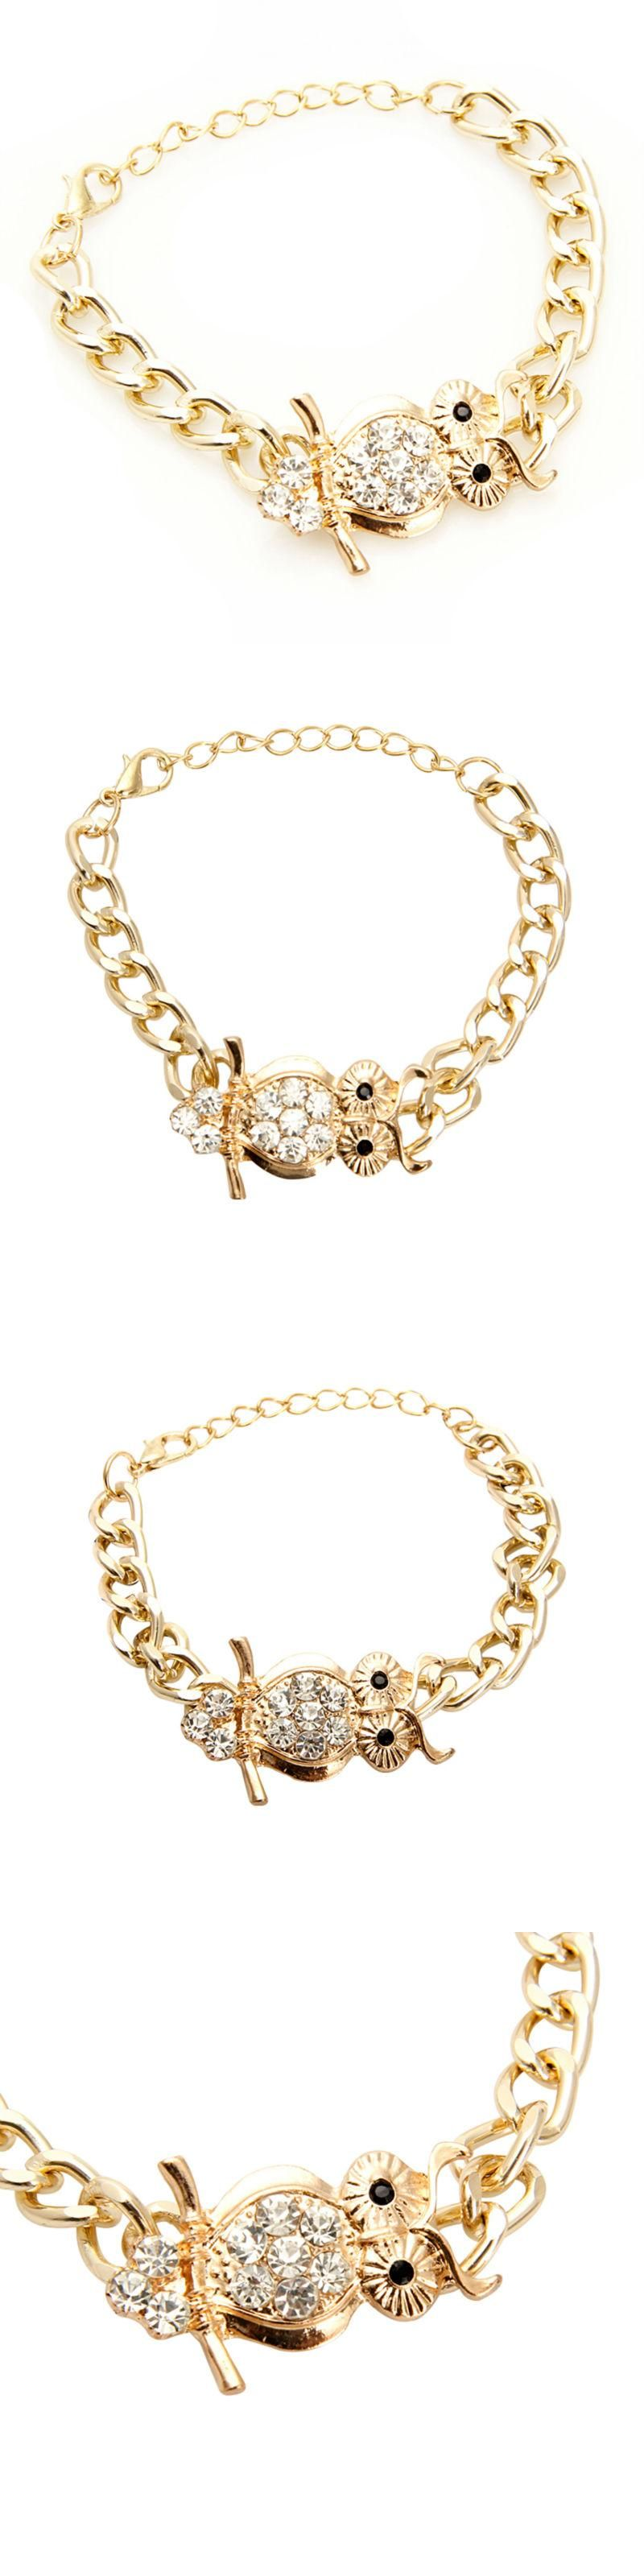 New gold color chain bracelets cubic zircon crystal owl for women